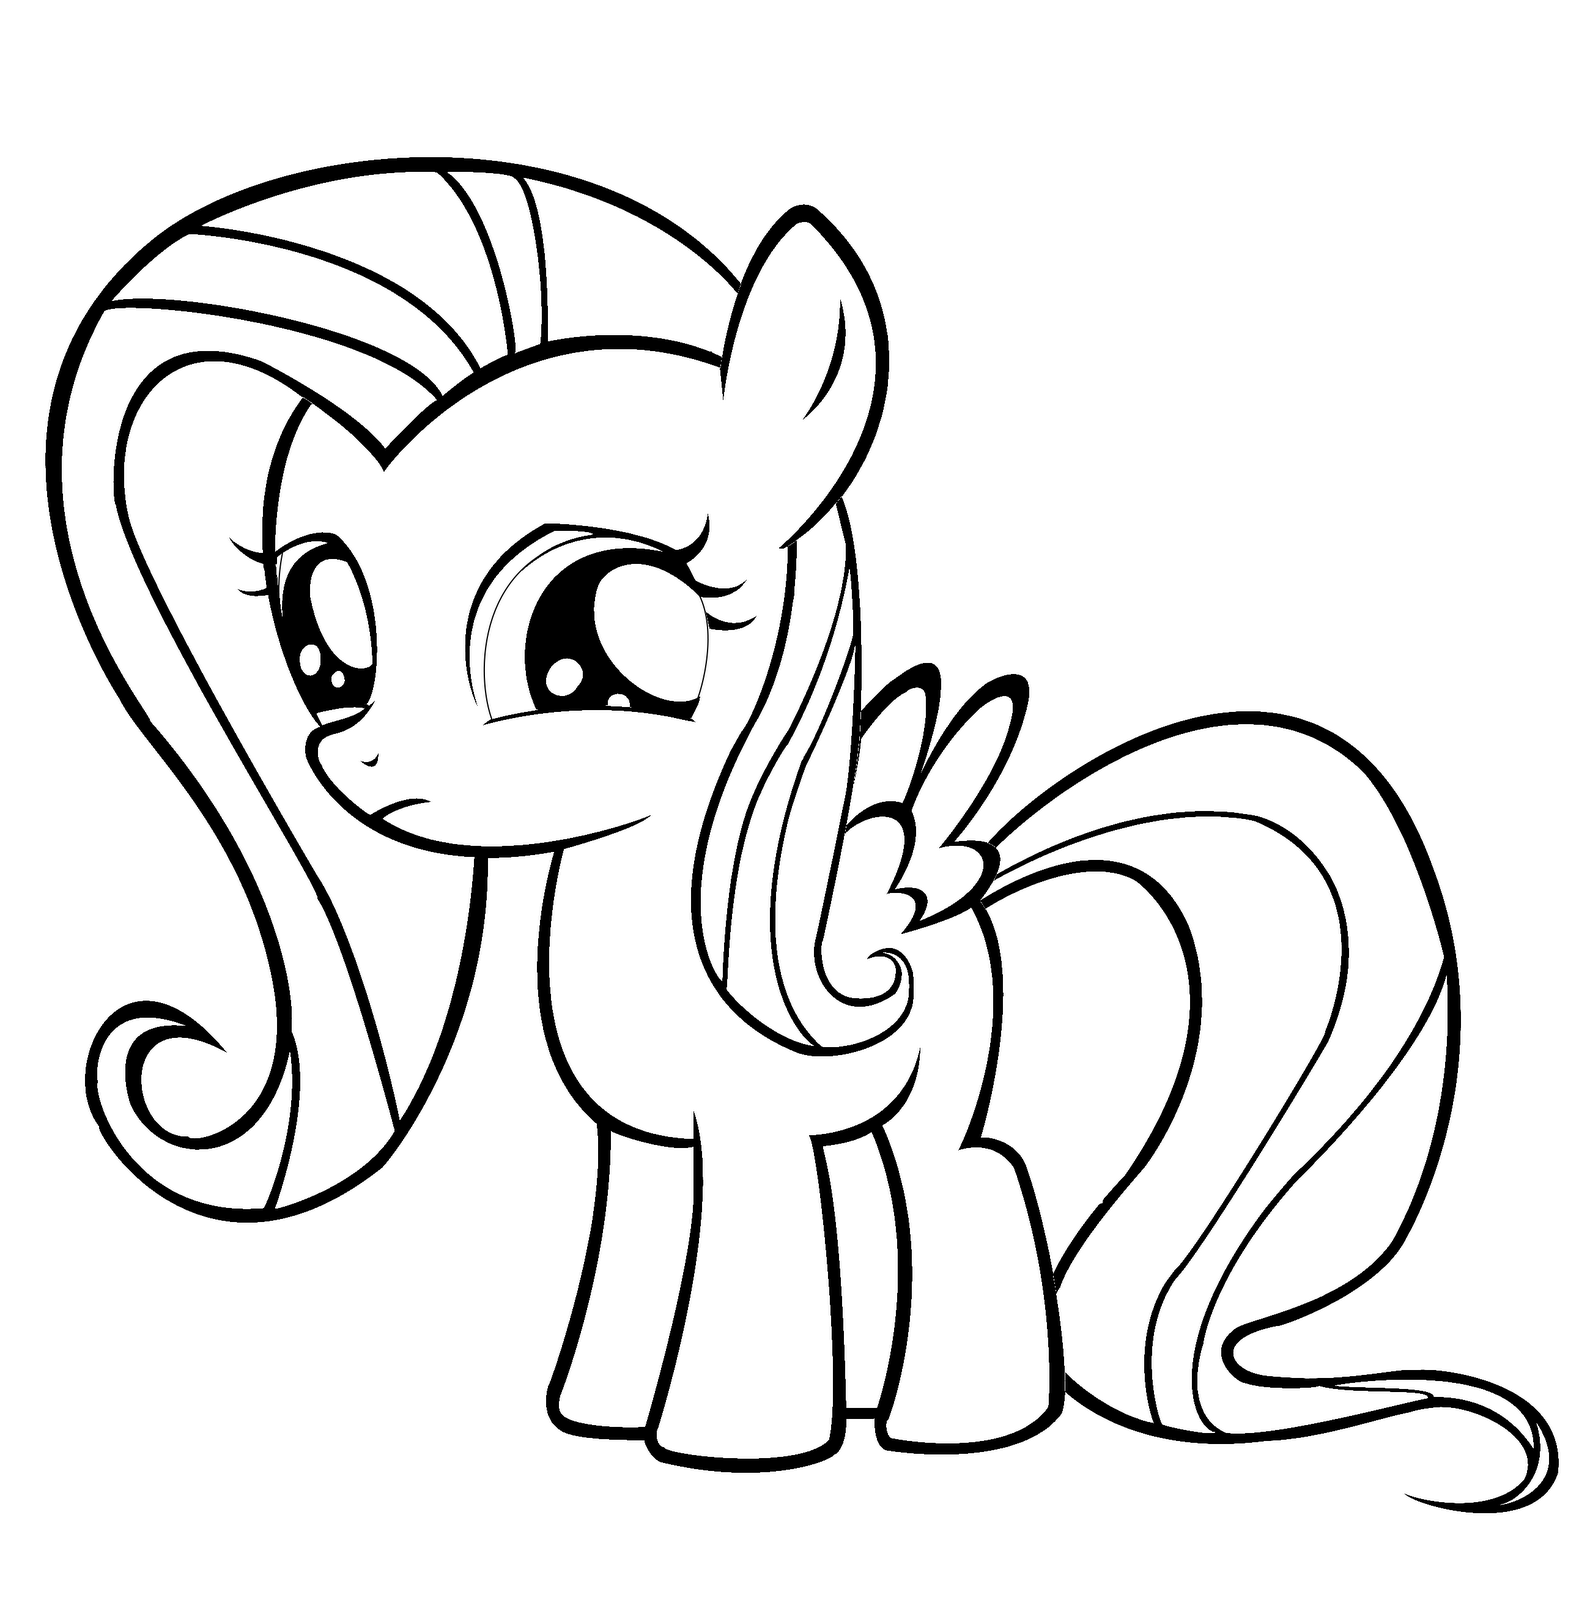 kids pony coloring pages - photo#21